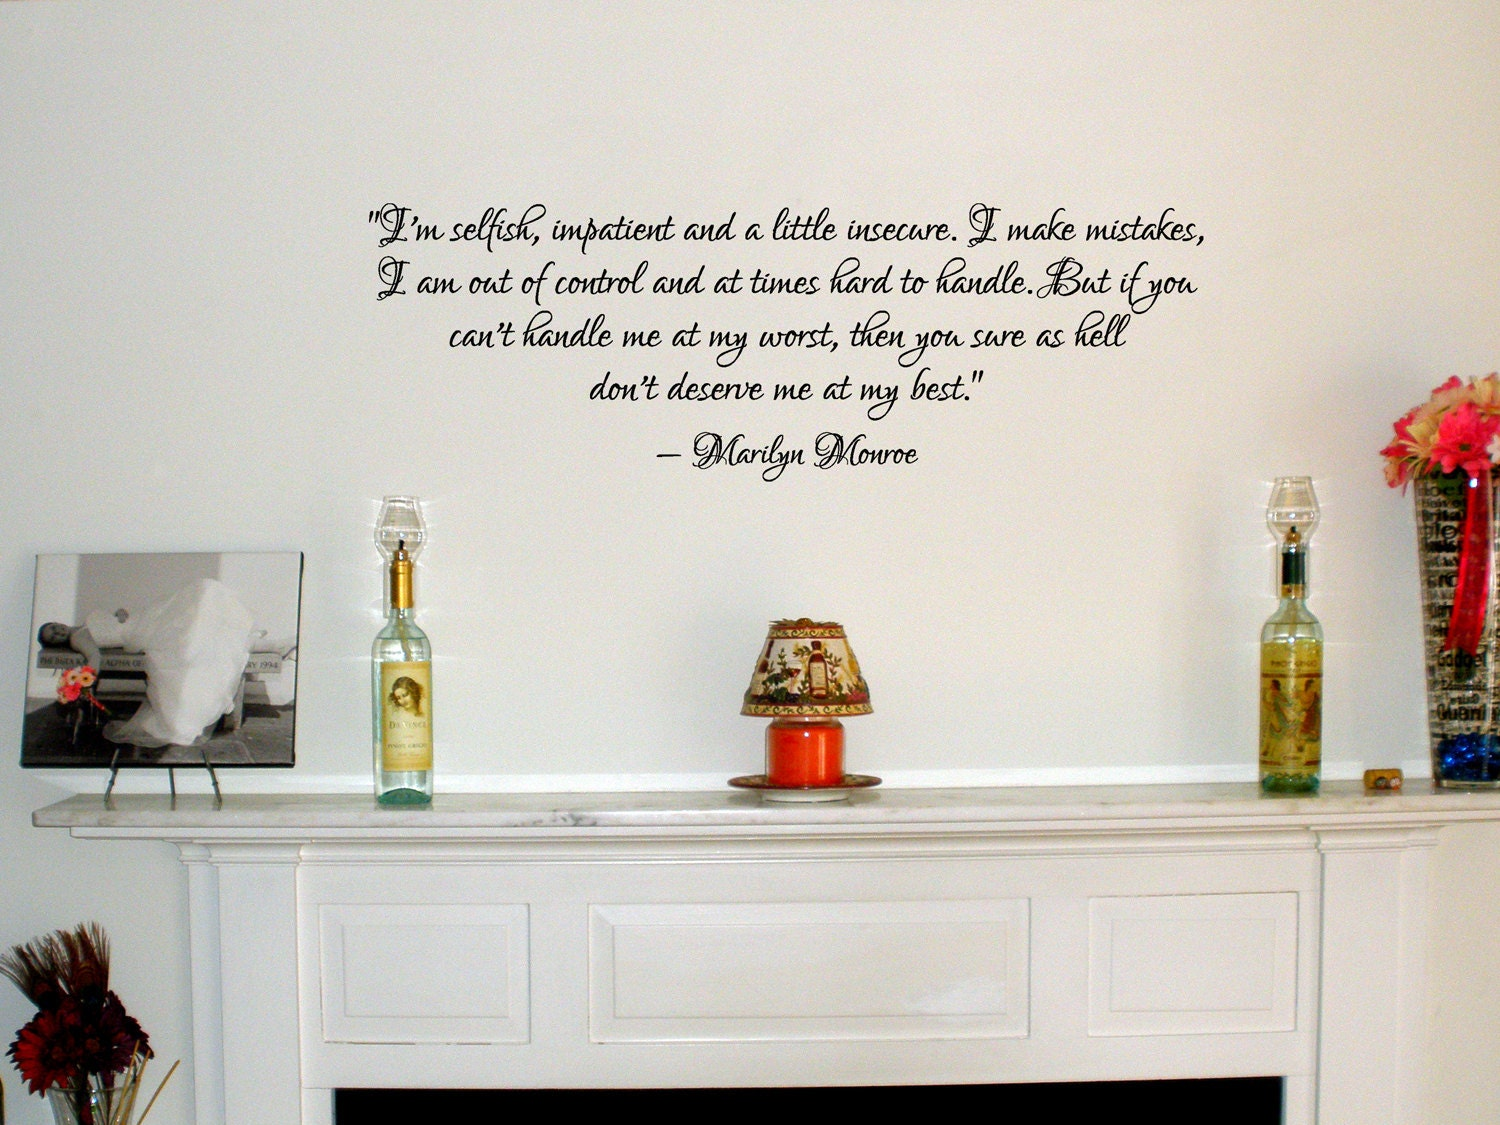 Marilyn Monroe quote removable